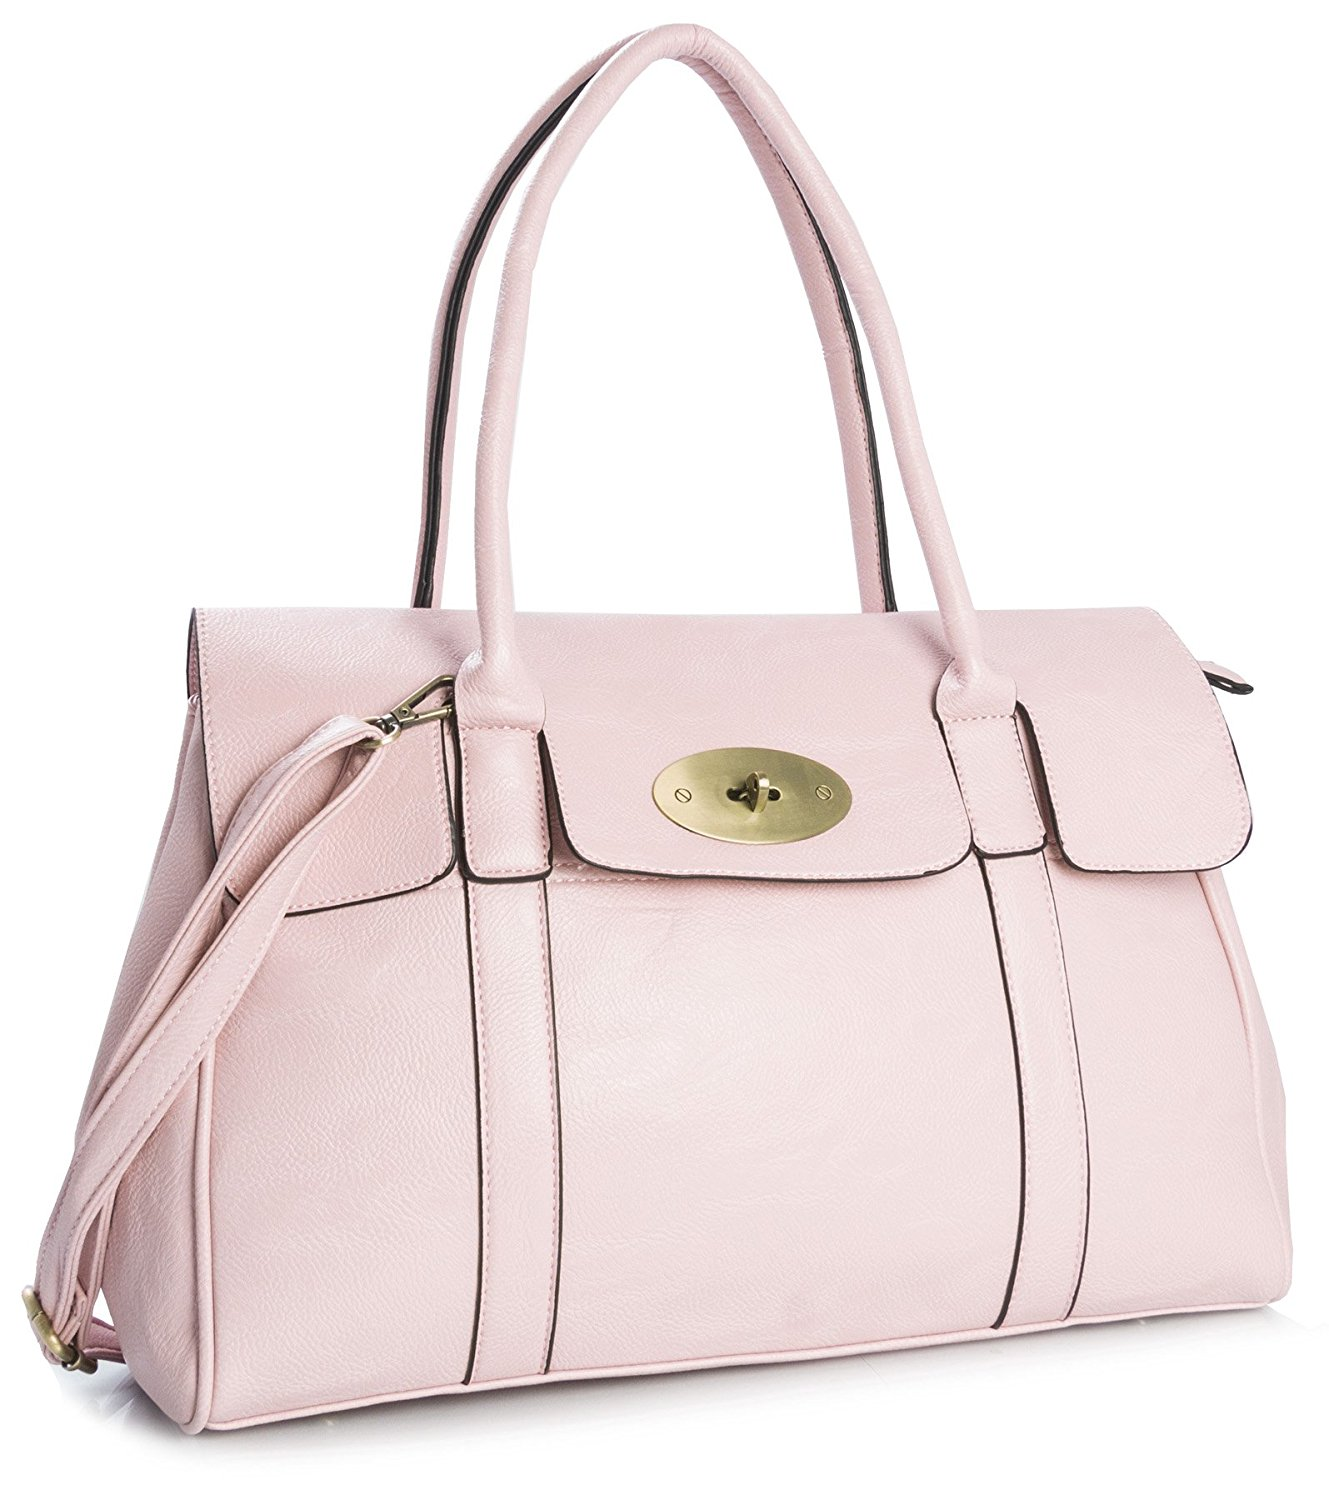 Big Handbag Shop Womens Faux Leather Designer Boutique Turnlock ...